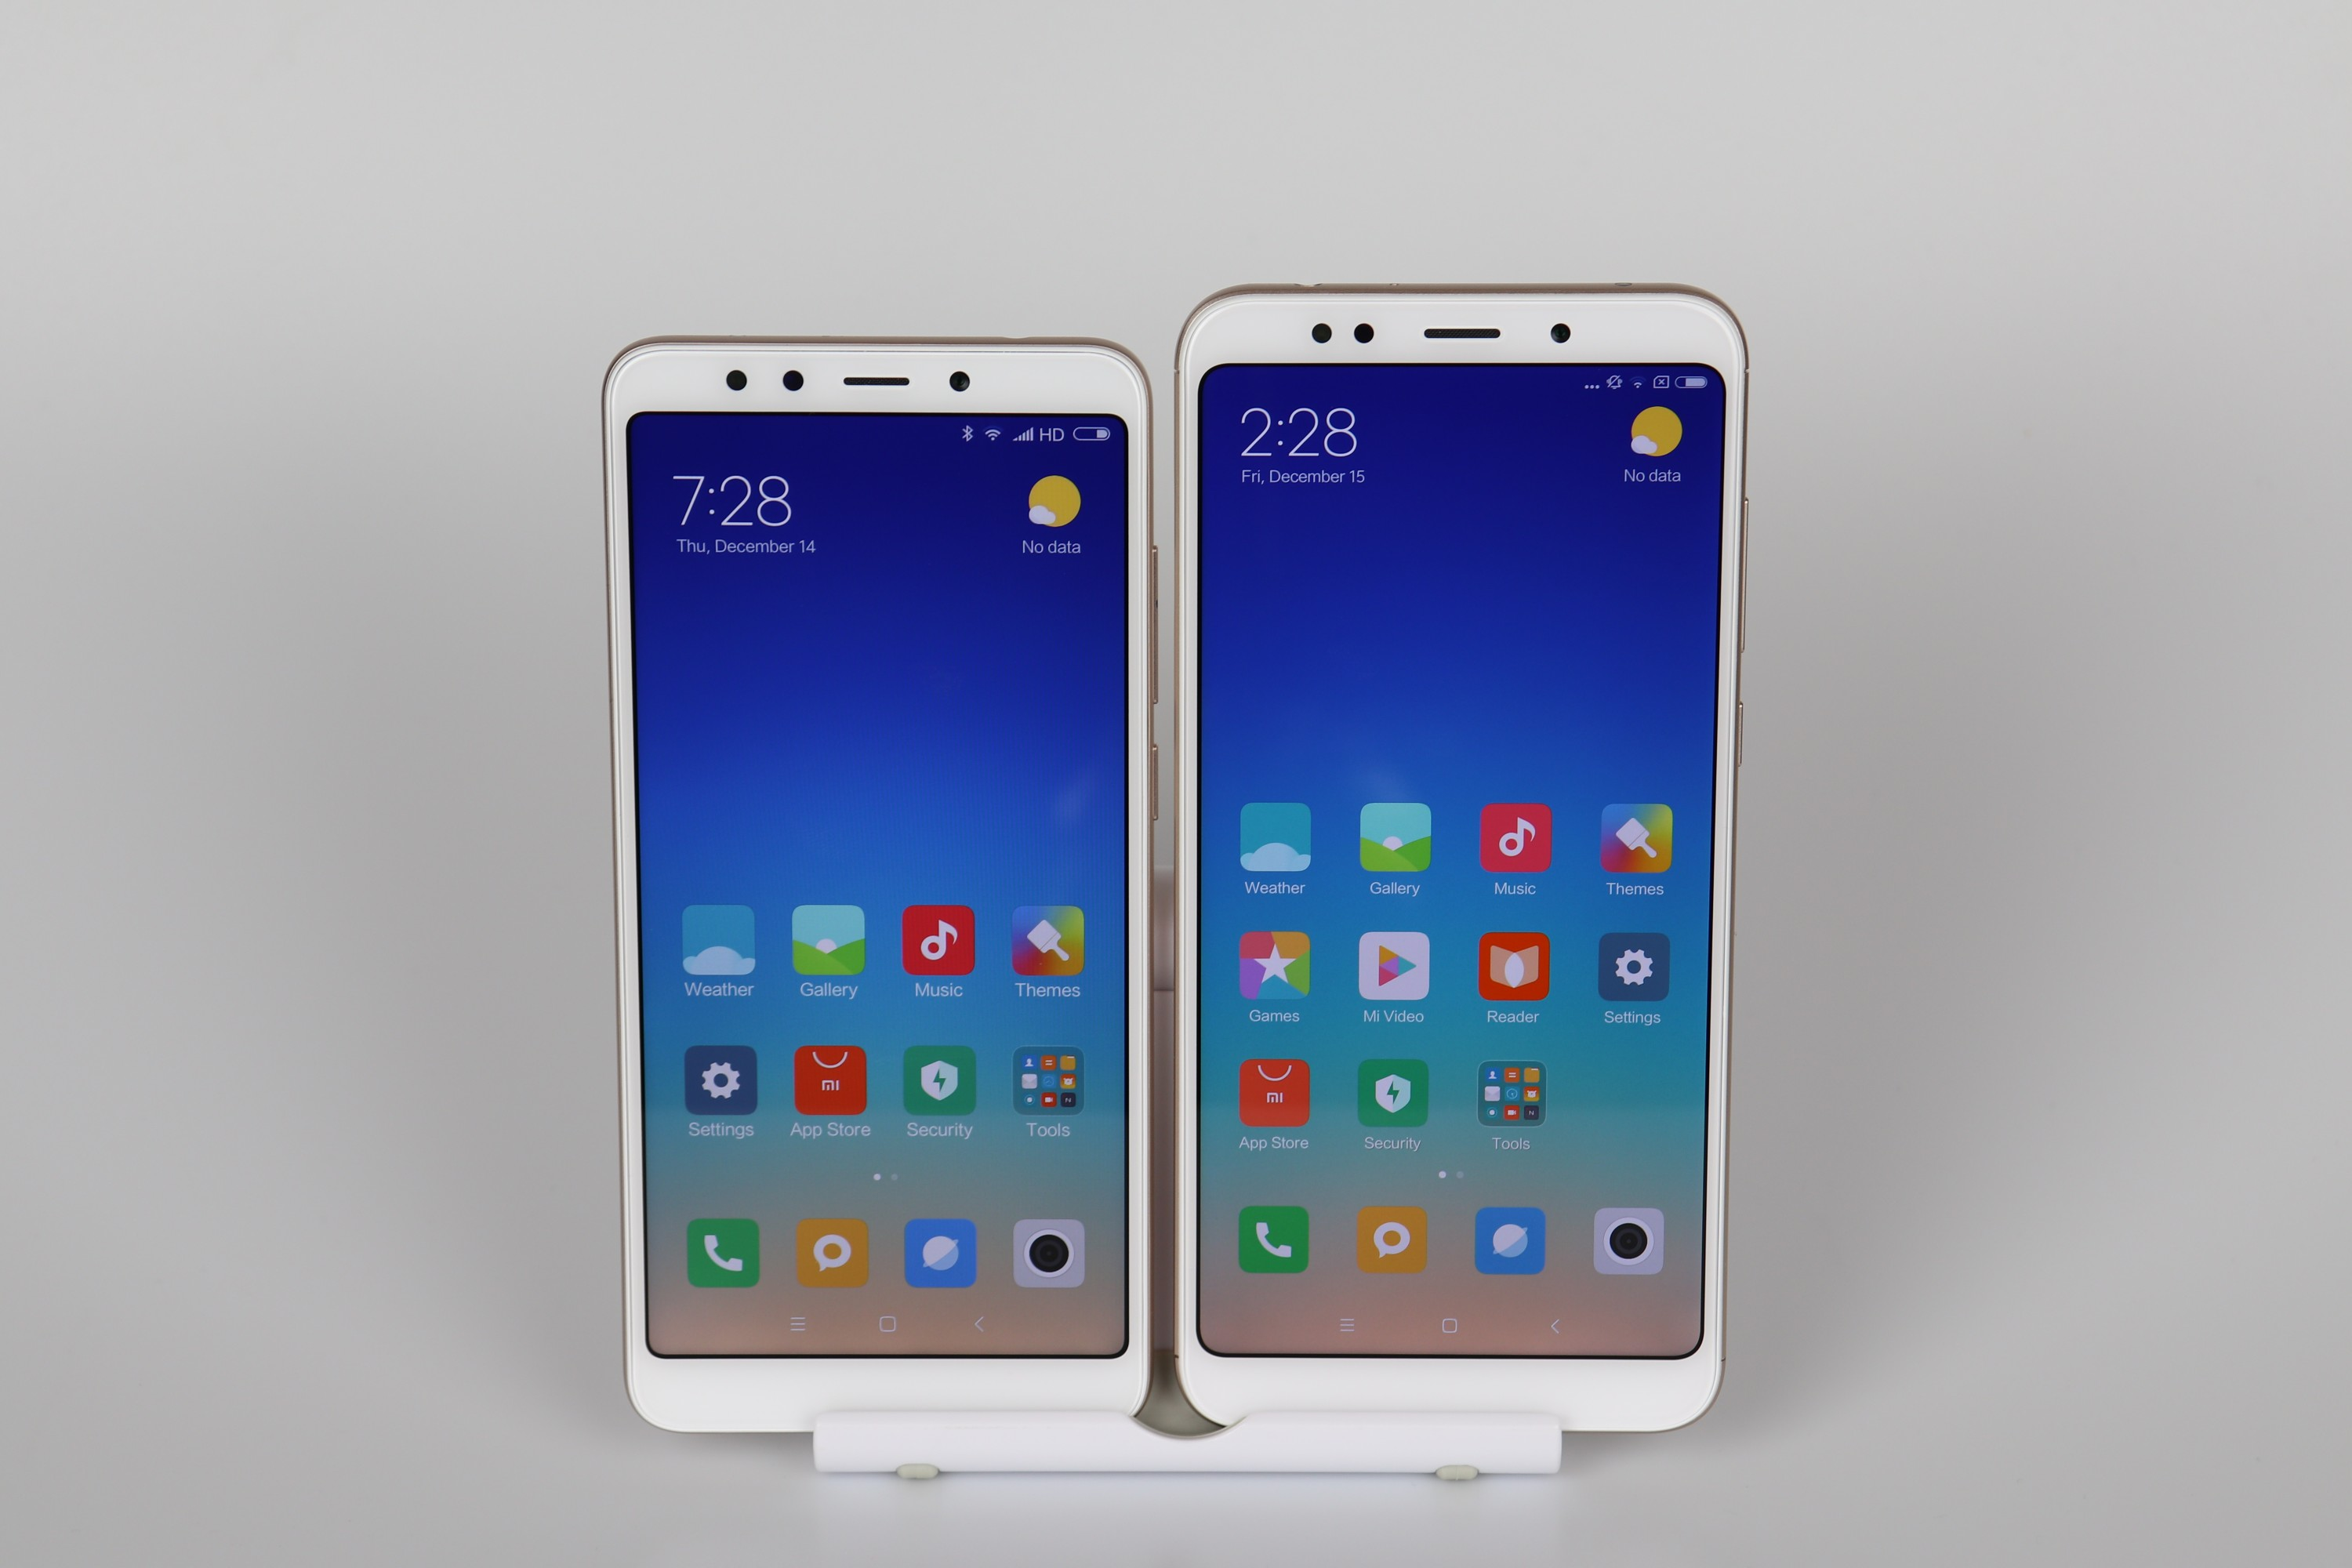 Xiaomi Redmi 5 Redmi 5 Plus Display Vergleich 2